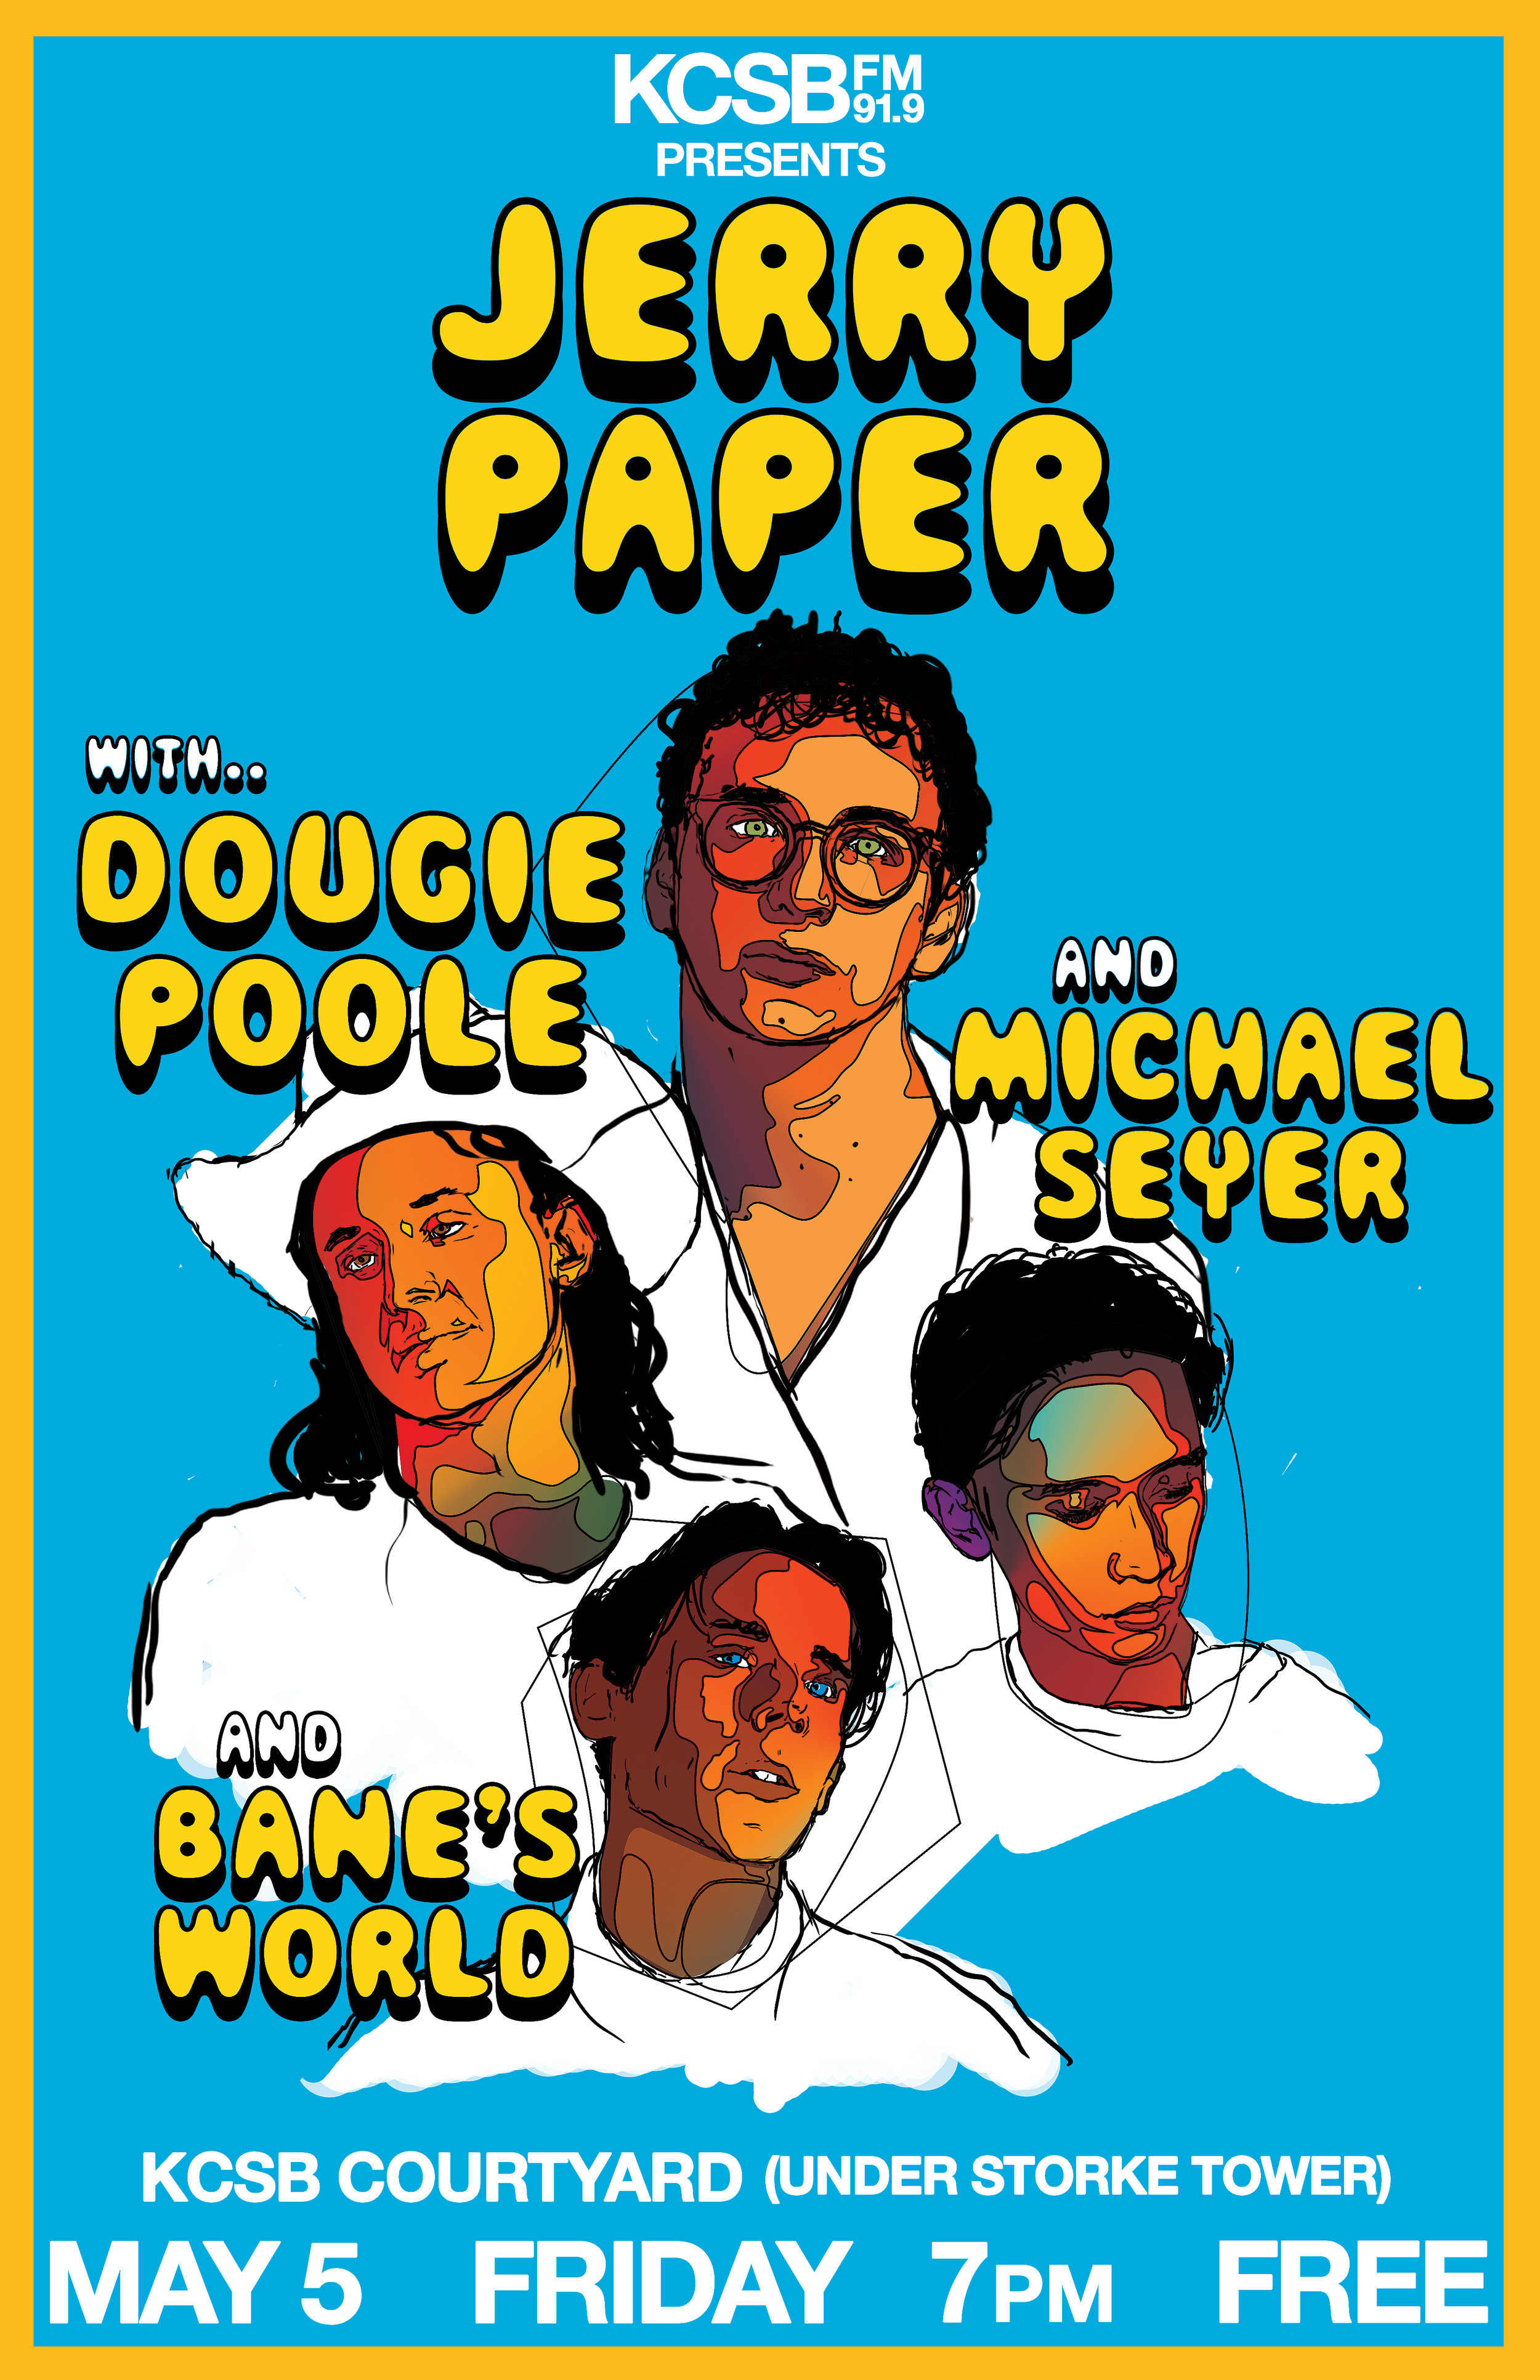 Jerry Paper, Dougie Poole, Michael Seyer, Bane's World